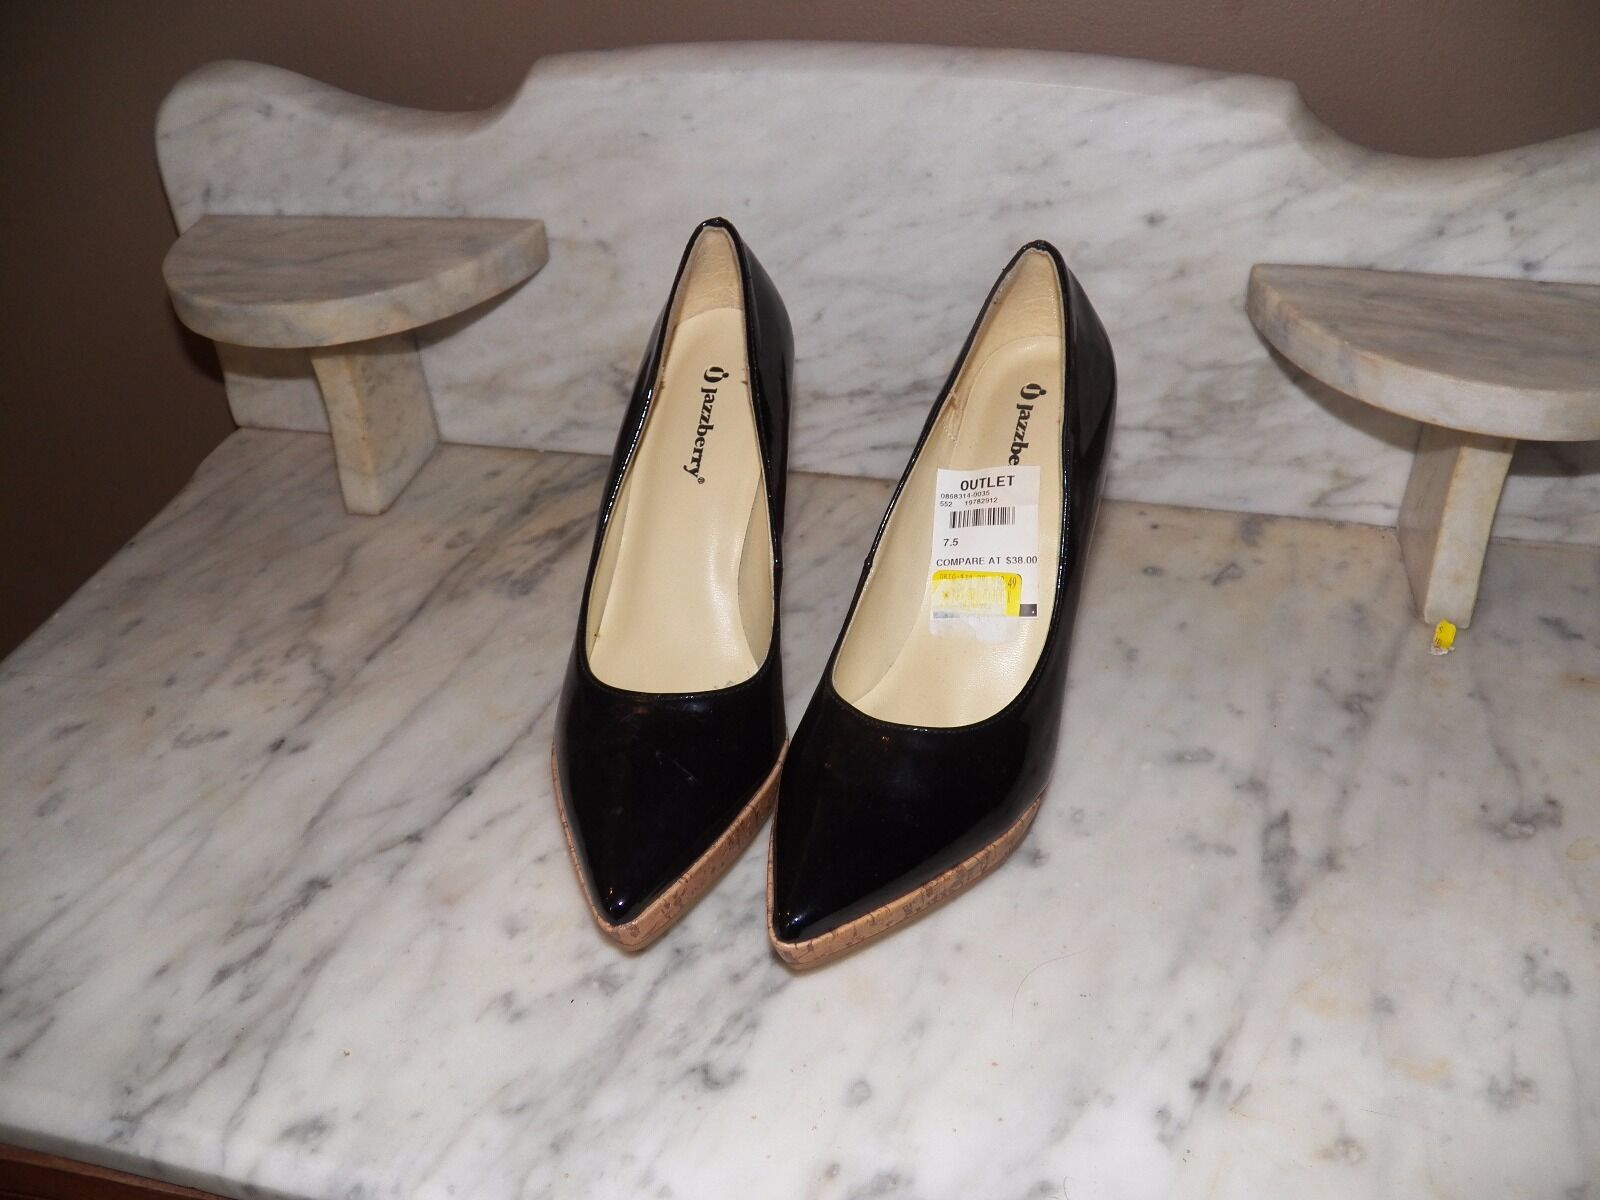 NWOB JAZZBERRY BLACK PATENT LEATHER LEATHER LEATHER CLASSIC STILLETO HEELS STACKED FRONT SZ 7.5 177a71